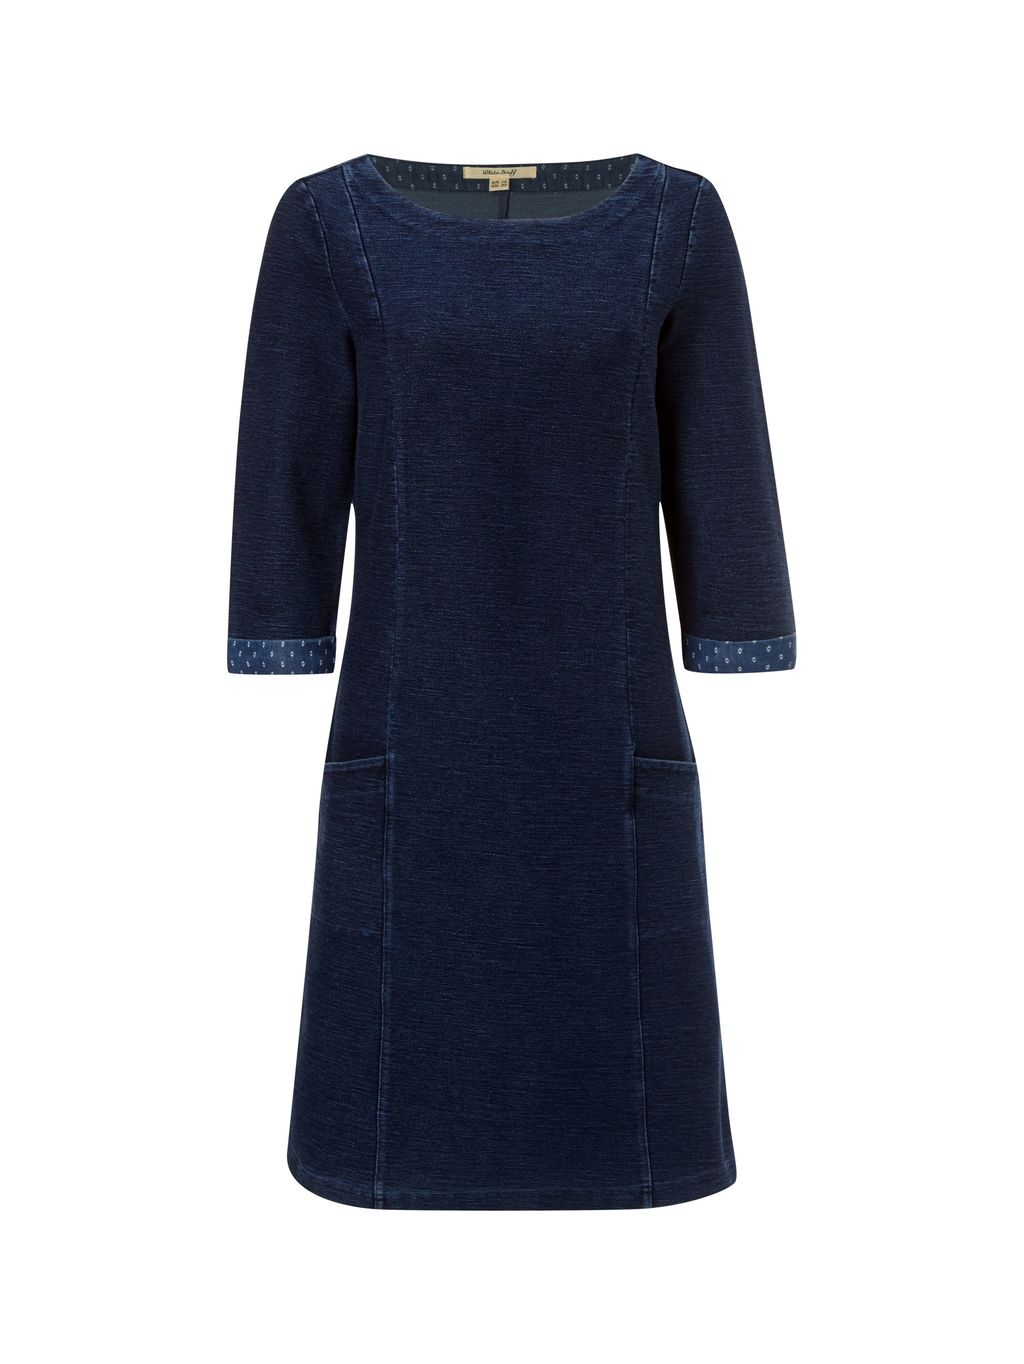 Kinley Jersey Dress, Denim - style: shift; length: below the knee; neckline: round neck; pattern: plain; predominant colour: navy; occasions: casual, creative work; fit: body skimming; fibres: cotton - stretch; sleeve length: 3/4 length; sleeve style: standard; pattern type: fabric; texture group: jersey - stretchy/drapey; season: a/w 2015; wardrobe: basic